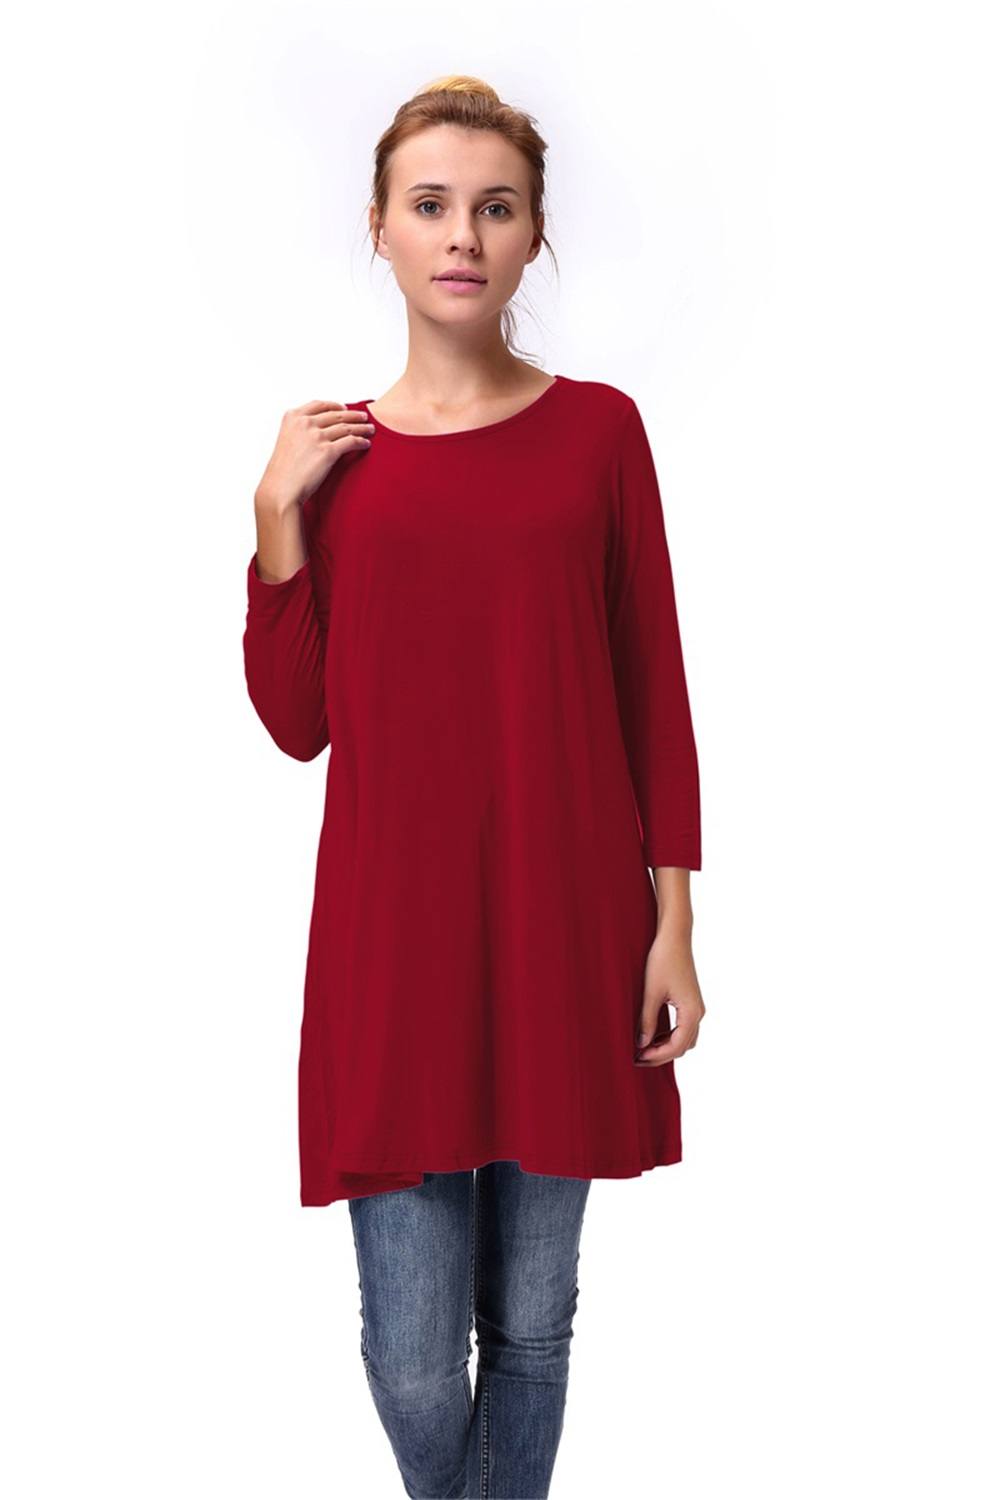 Women-039-s-Long-Tunic-Top-3-4-Sleeve-Dolman-Boat-Neck-USA-Dress-S-M-L-1X-2X-3X-PLUS thumbnail 21